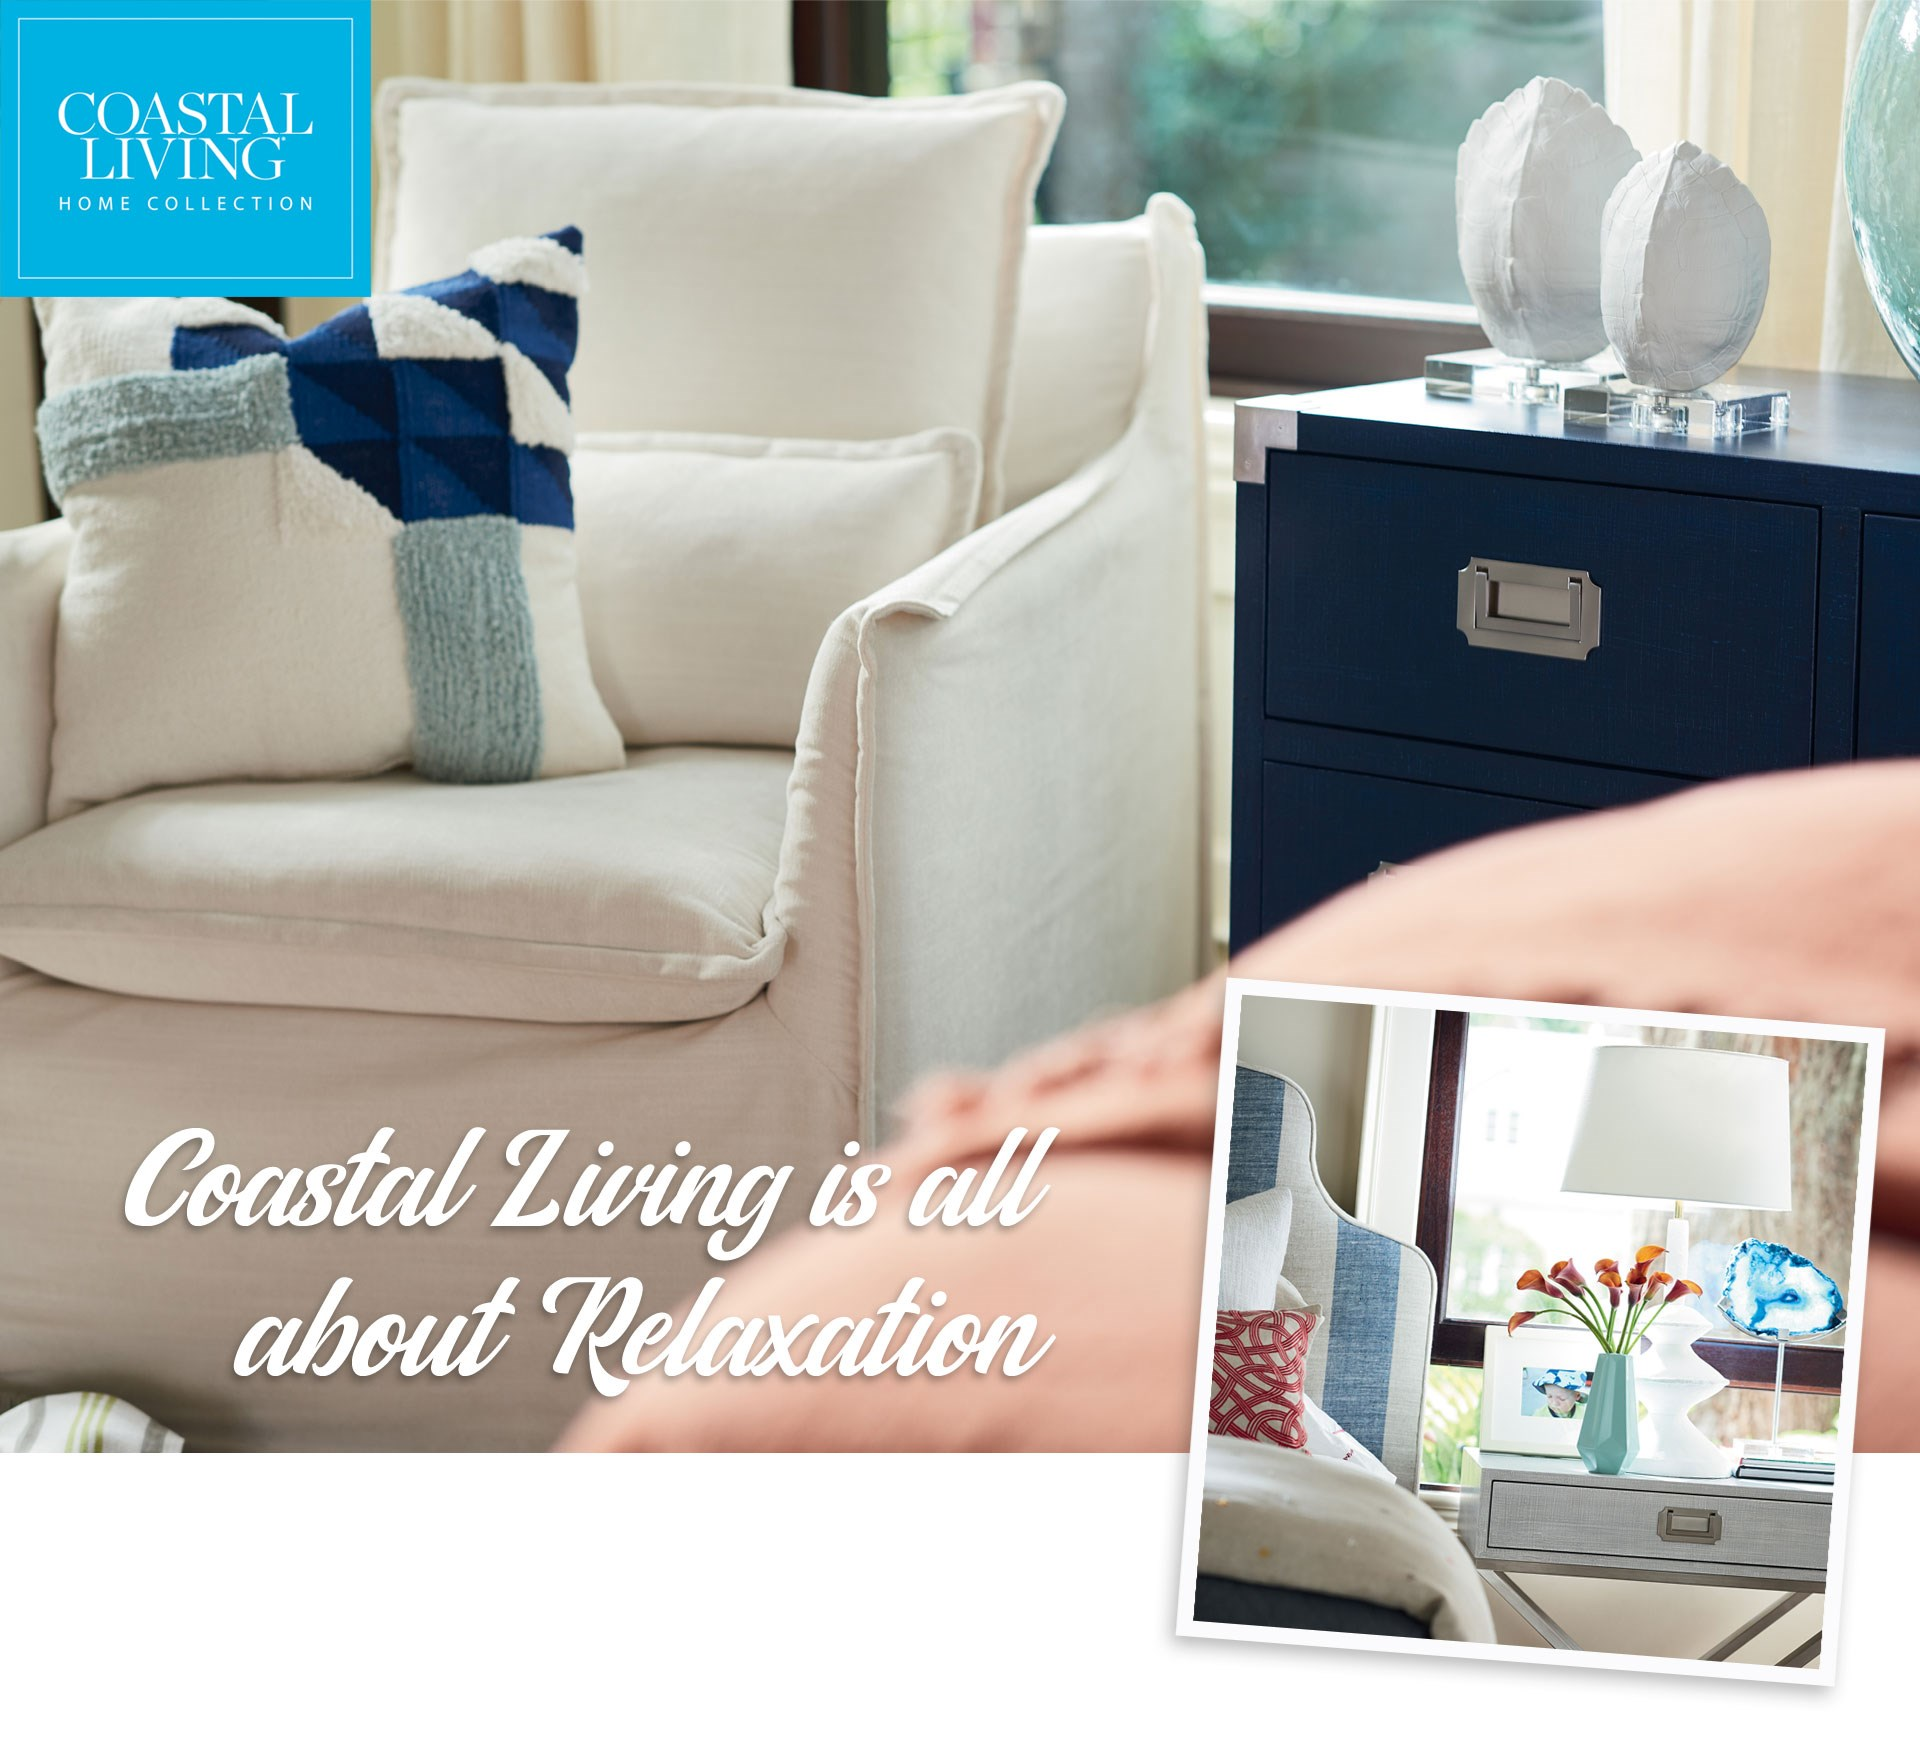 Coastal Living | Coastal Living is all about Relaxation